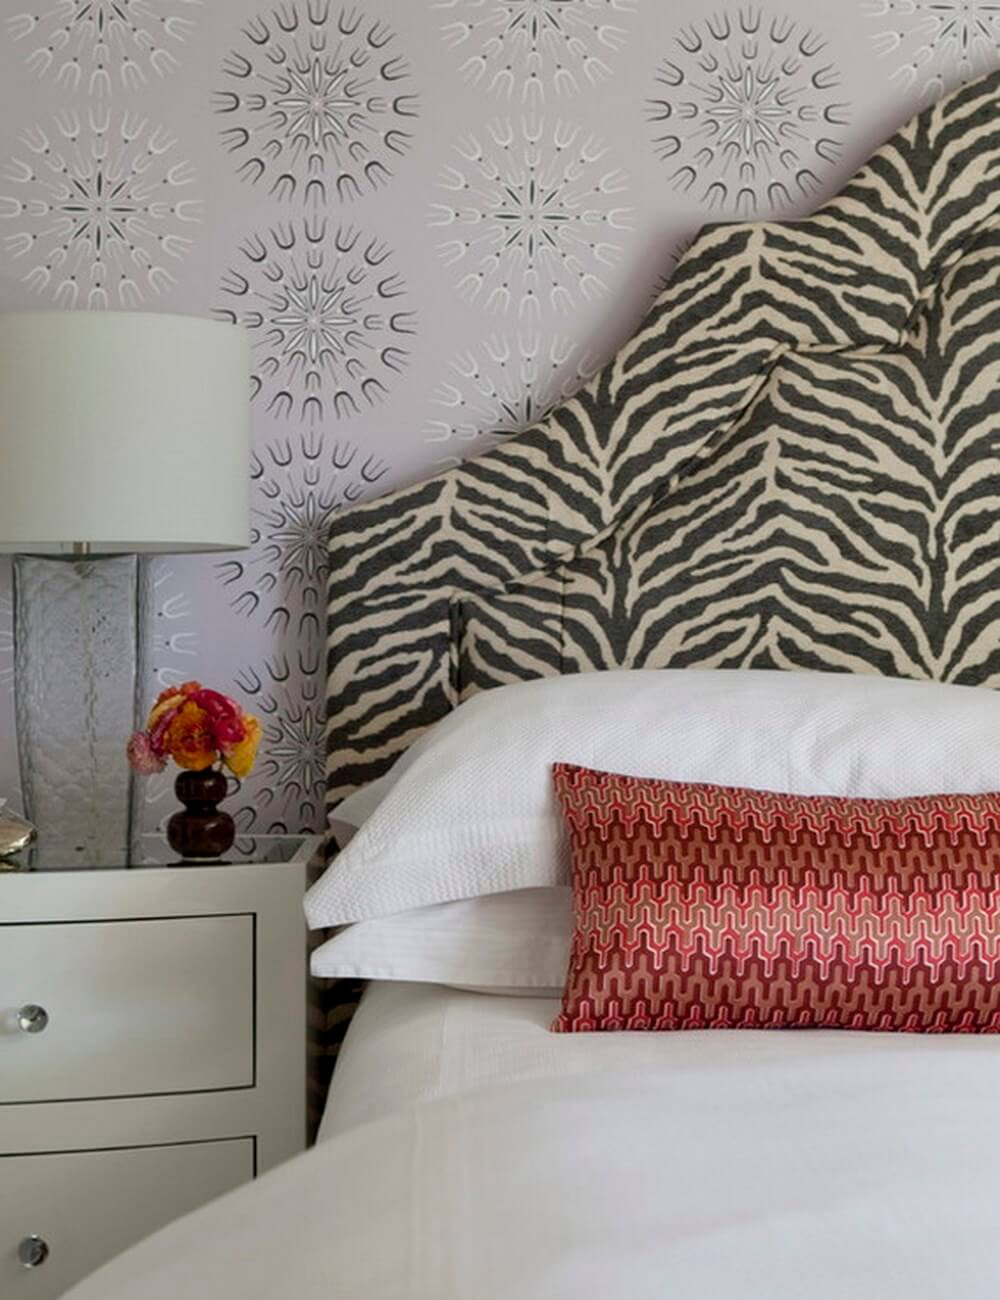 Zebra print bed headboard